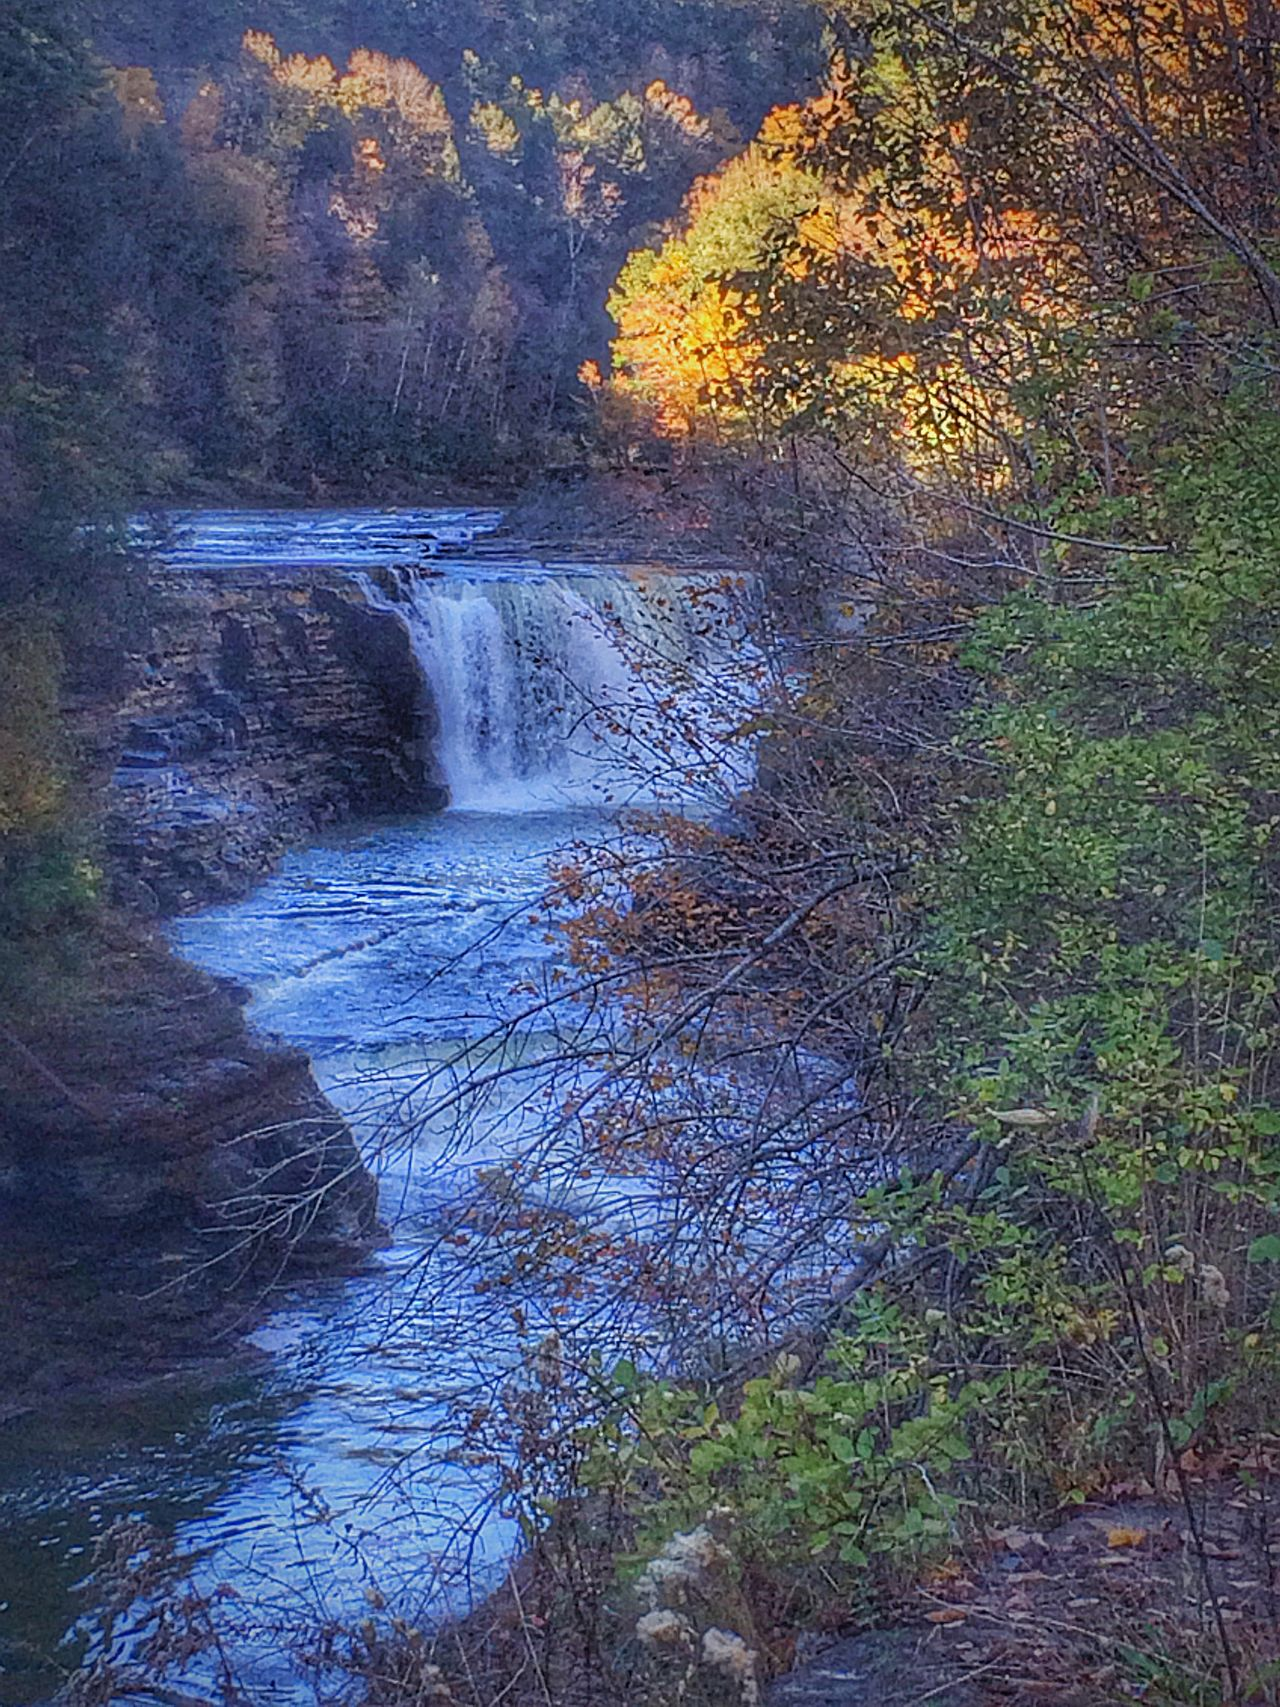 On A Hike Enjoying The Sights Nice Views The Places I've Been Today Getting In Touch Fall Beauty Landscape_Collection Nature EyeEm Nature Lover Waterfall